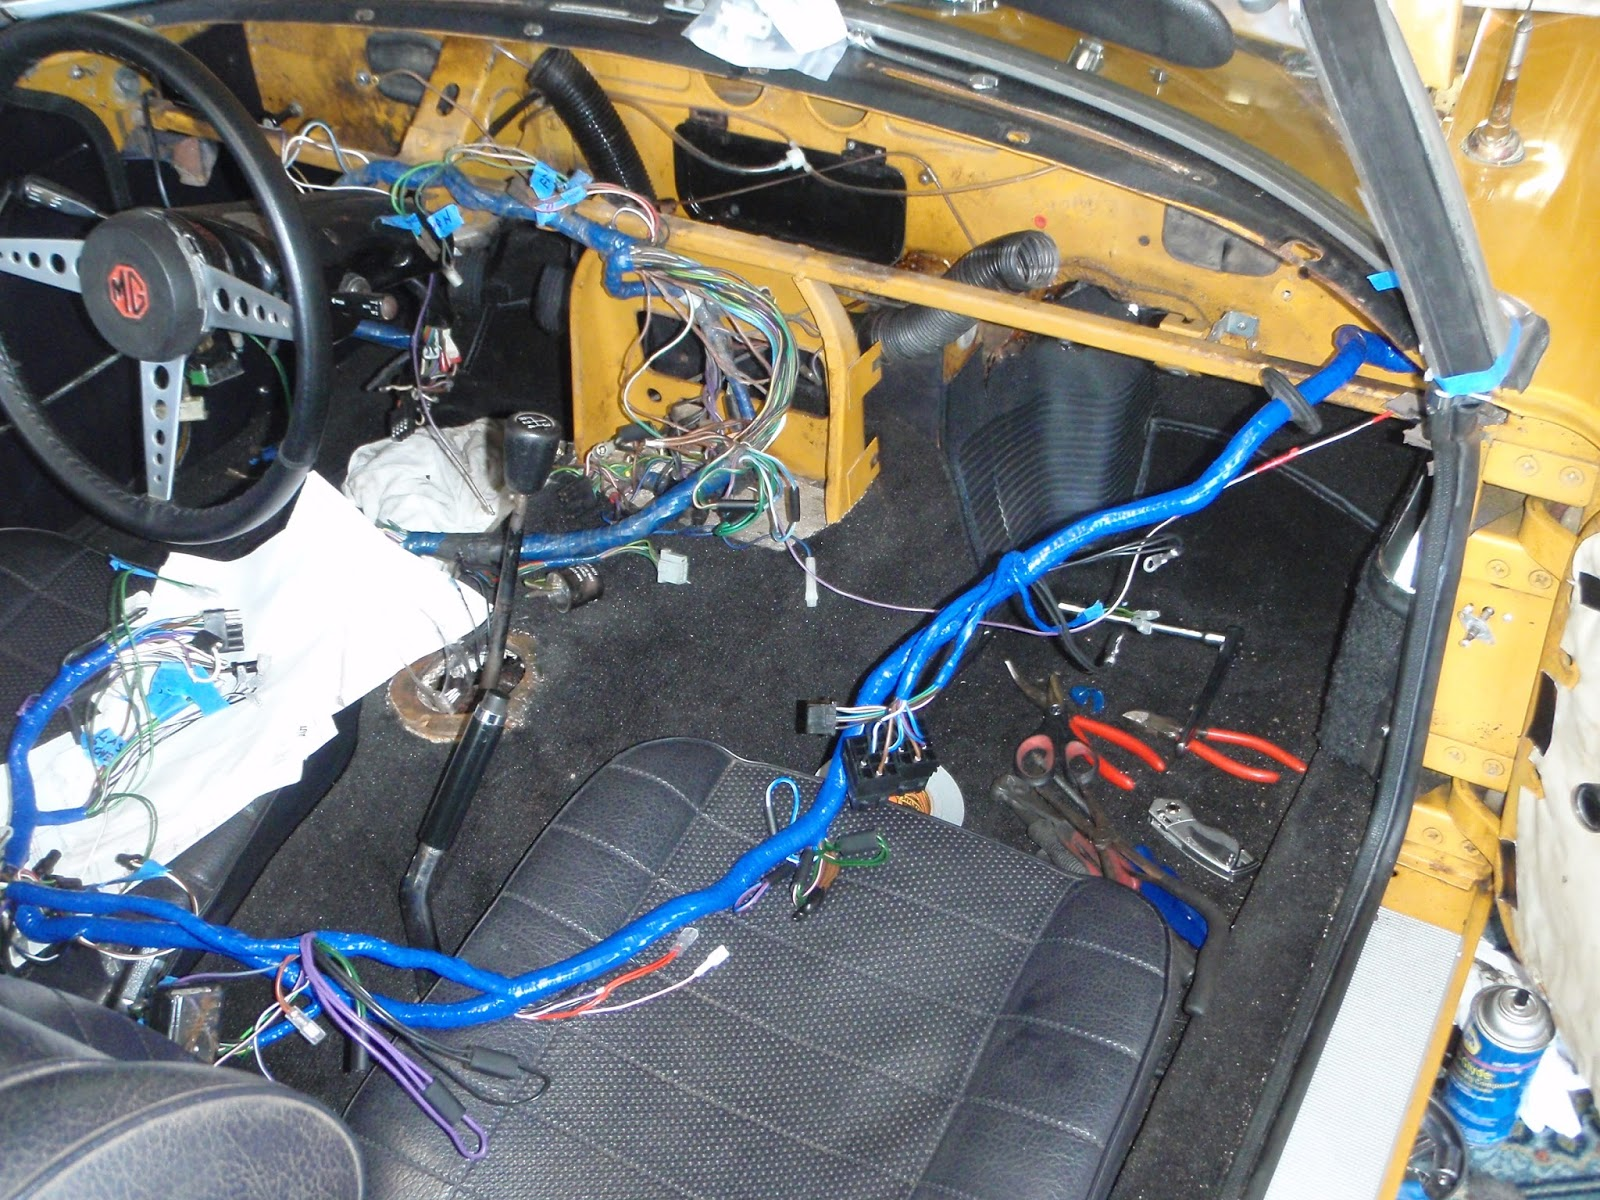 Mgb In The Garage 2013 Dashboard Wiring Harness New On Seat And Old Still Attached To Dash Supports